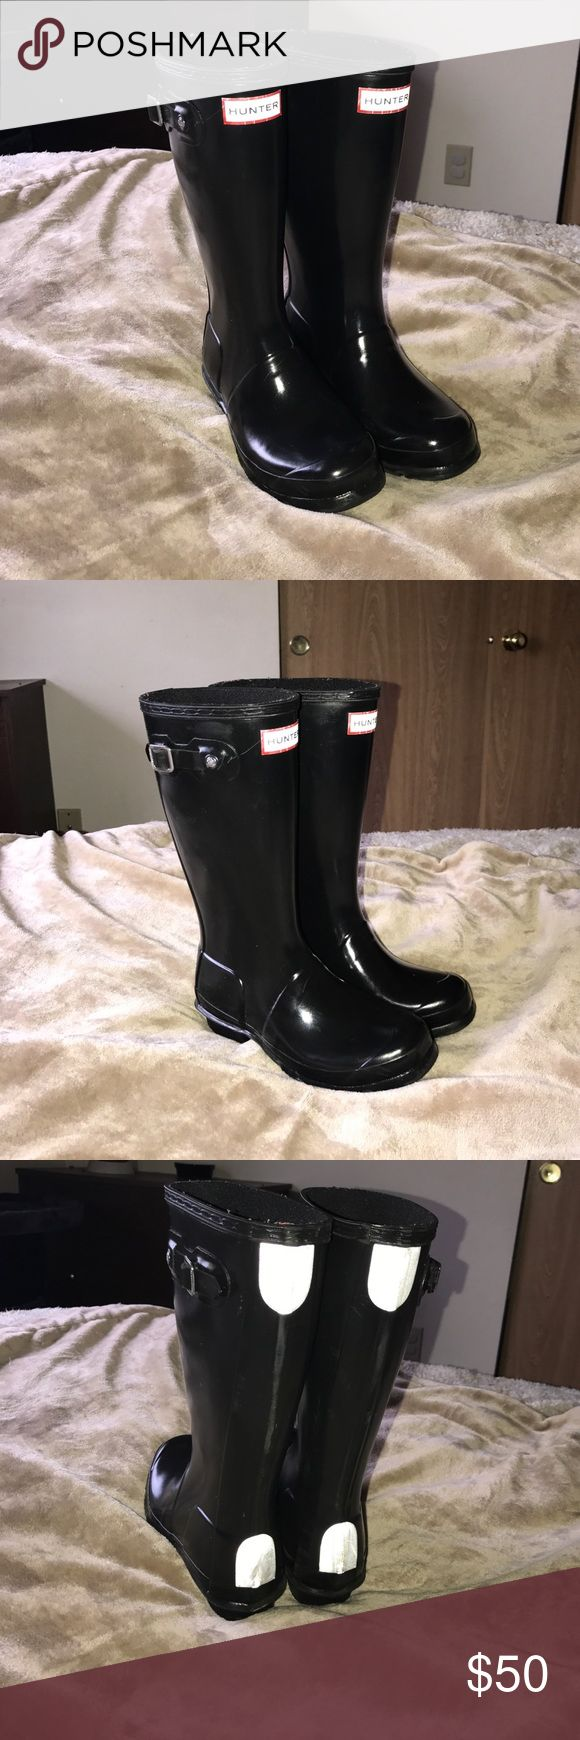 Big kid Hunter rain boots Big kid Hunter rain boots with adjustable calf and reflective detail. New without tags! Hunter Boots Shoes Rain & Snow Boots